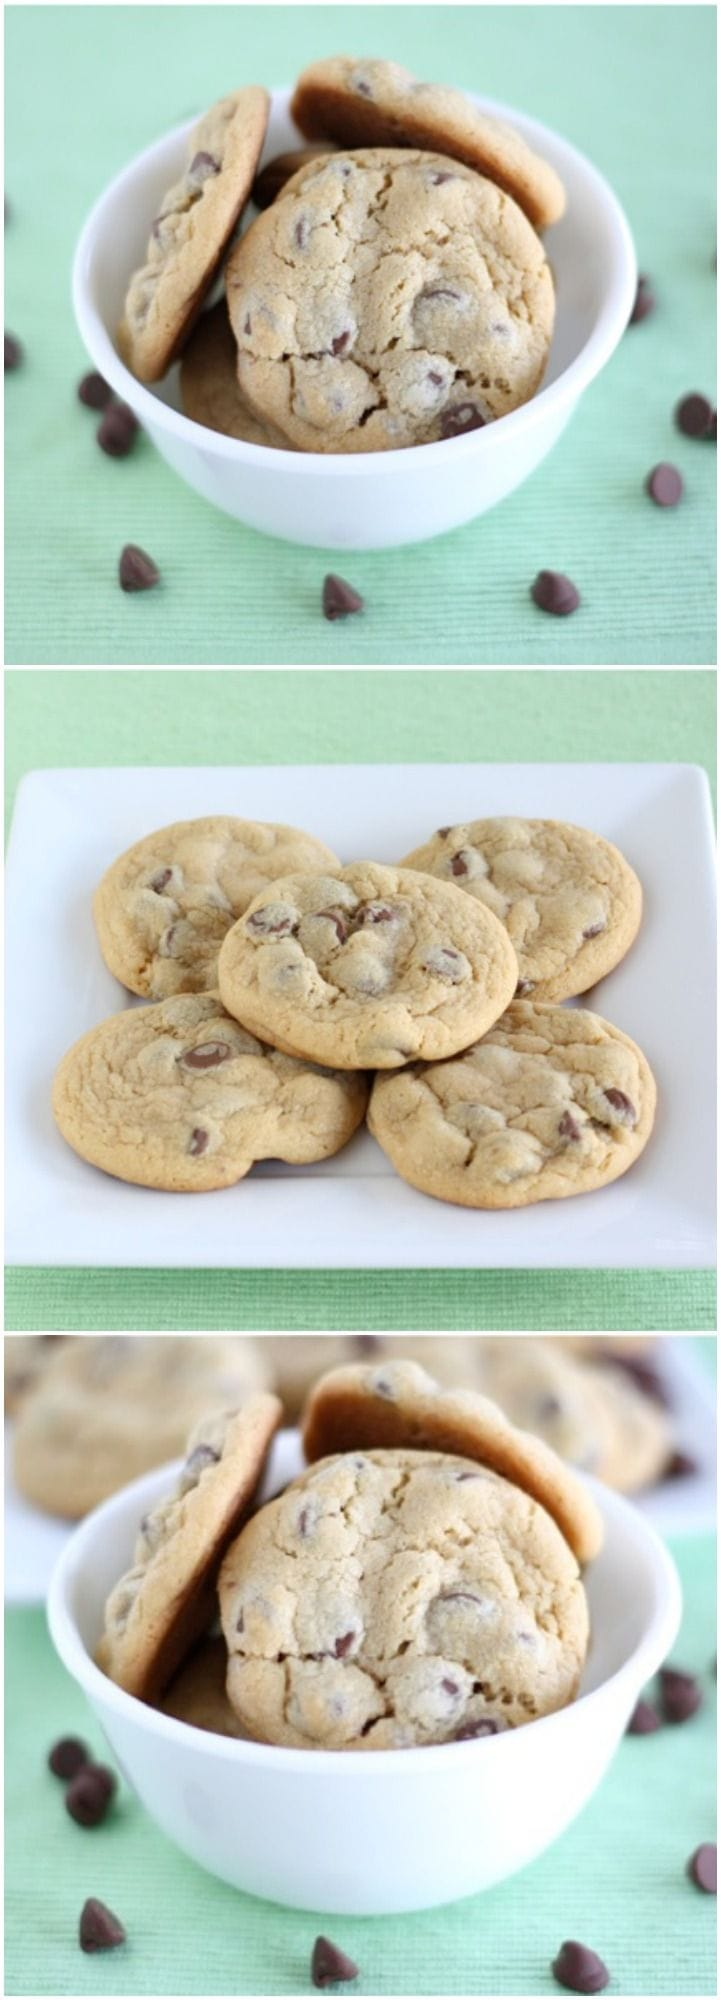 Vanilla Pudding Chocolate Chip Cookie Recipe on twopeasandtheirpod.com The BEST soft chocolate chip cookies! Everyone LOVES these cookies!